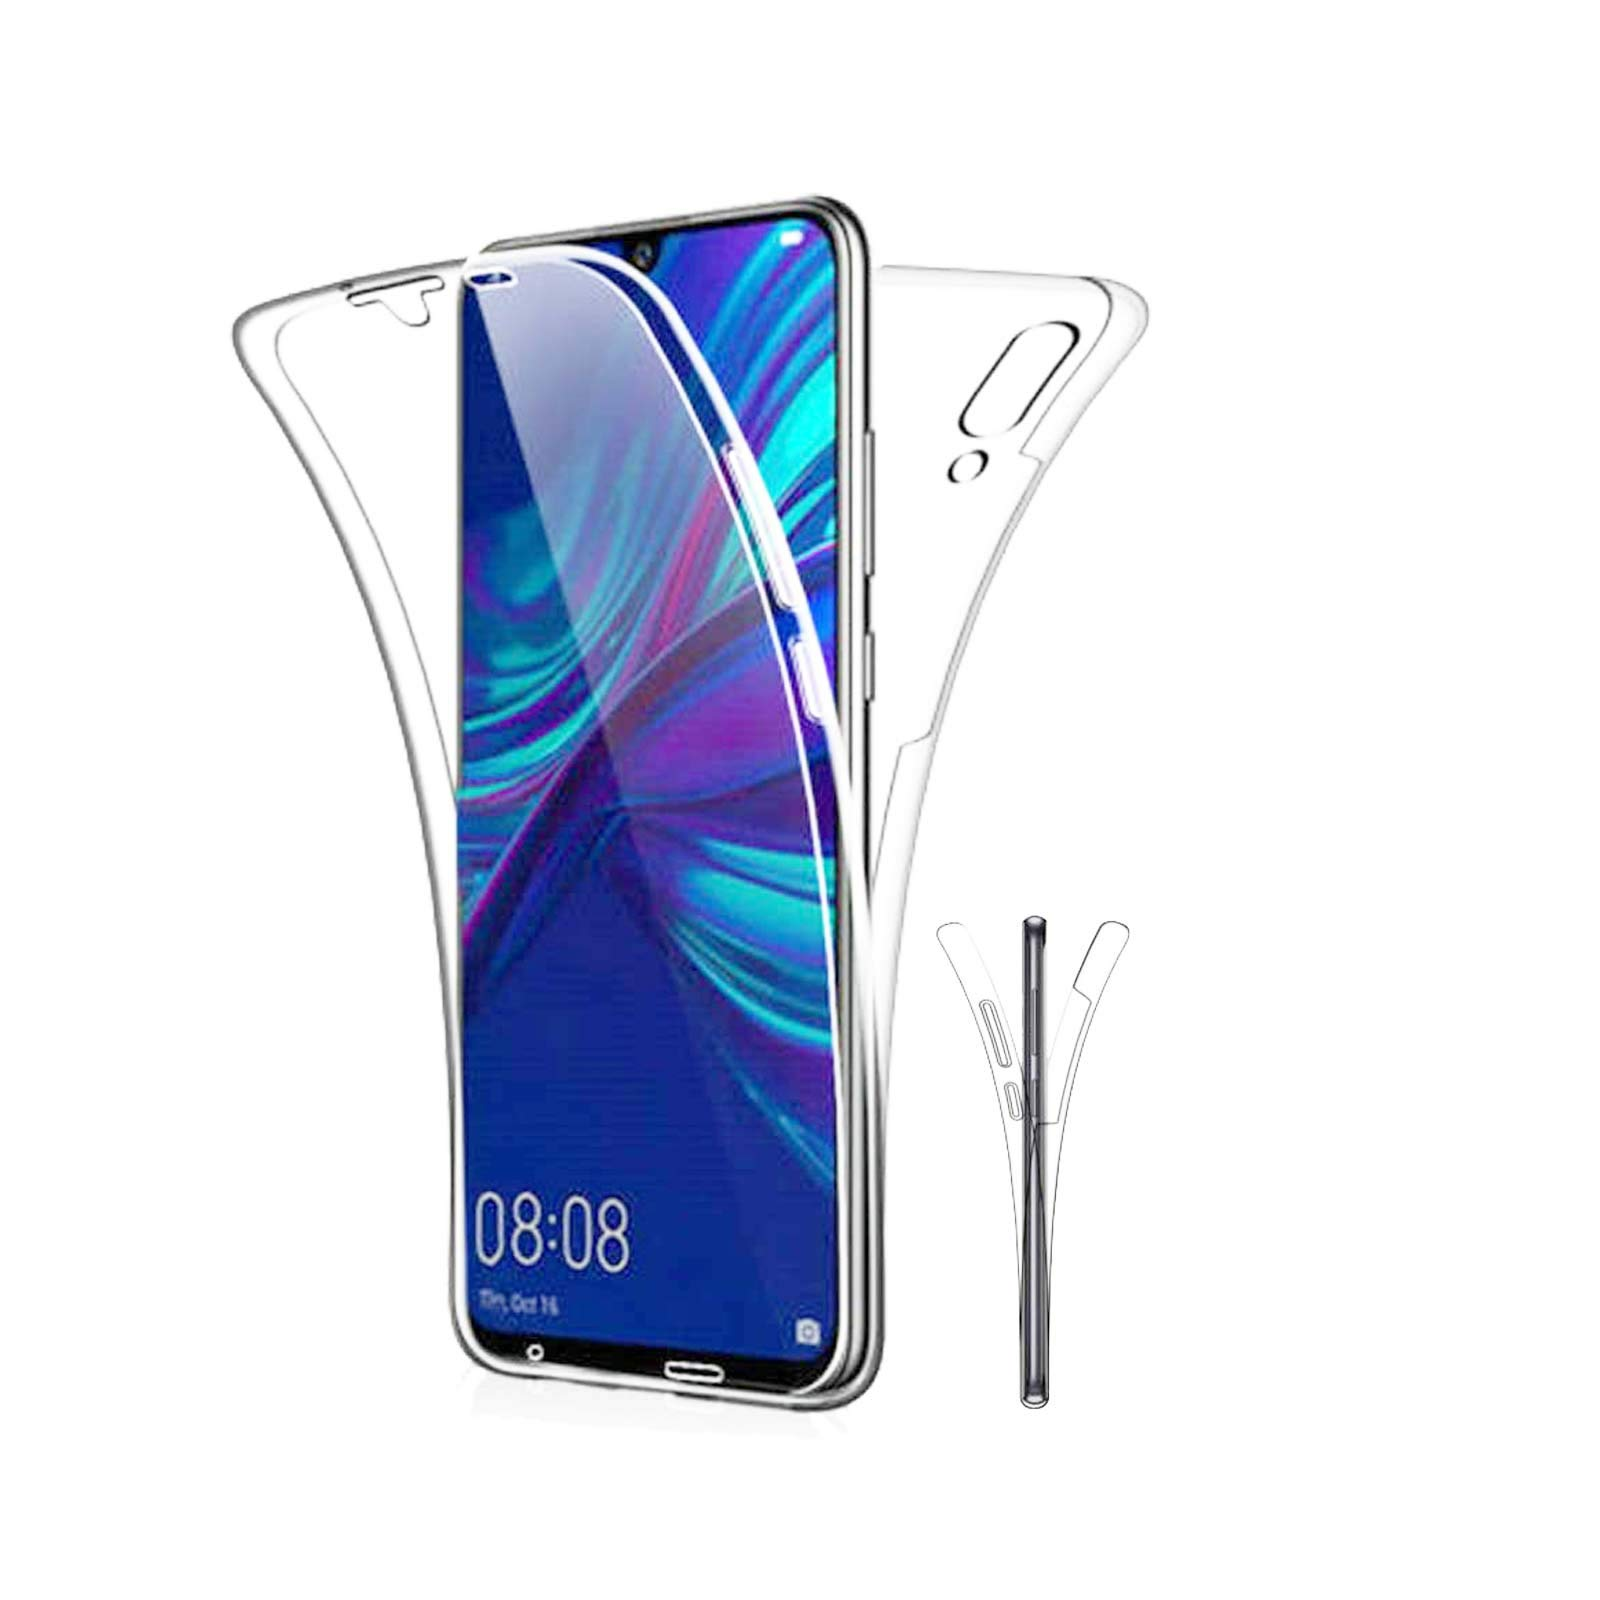 Coque Integrale Huawei P Smart 2019